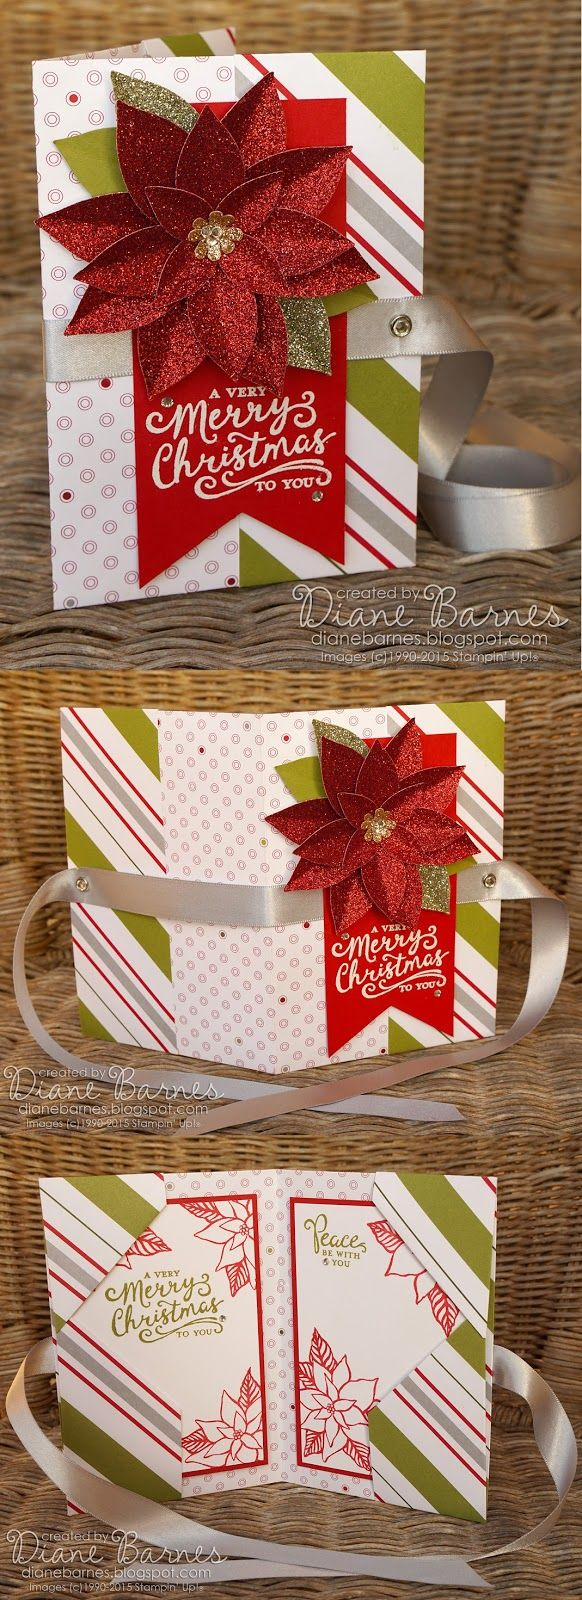 No-cut patterned paper gift card folder & tutorial for Christmas with Stampin Up Merry Moments, Festive Flower poinsettia & Reason for the Season. By Di Barnes #colourmehappy #2015Holidaycatalogue #stampinup